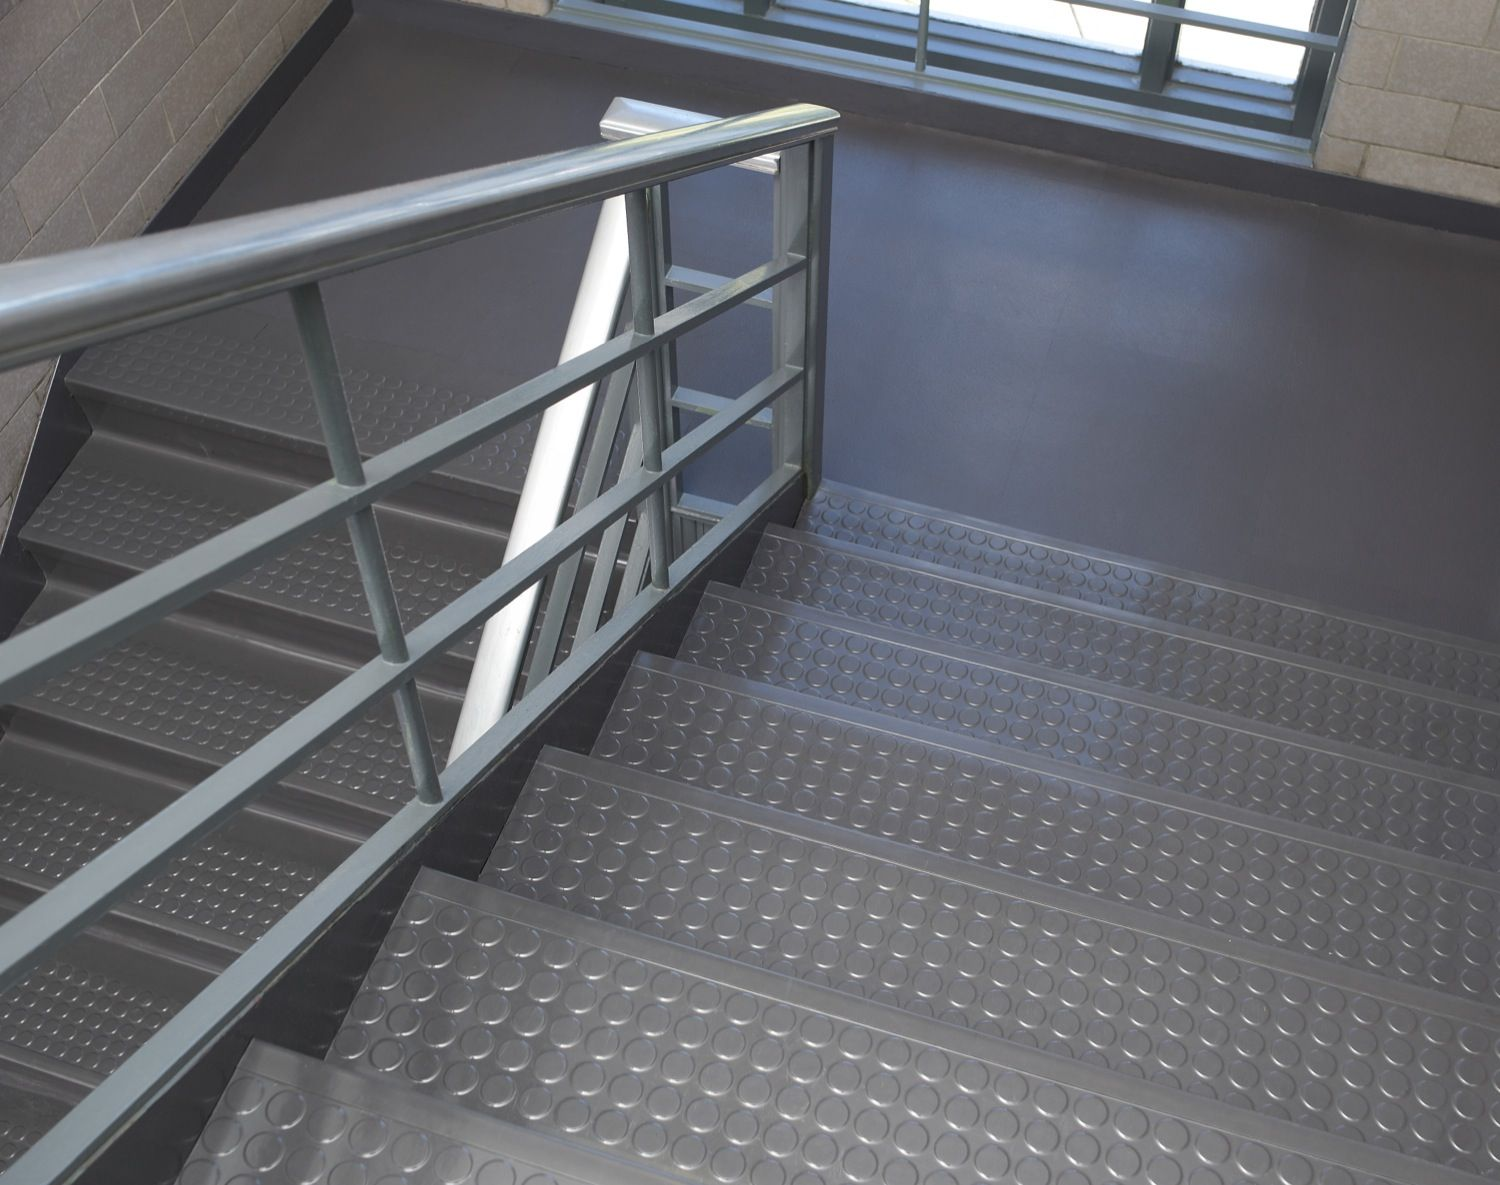 Rubber mats for stairs - Awesome Rubber Stair Treads Http Www Sbadventures Com Awesome